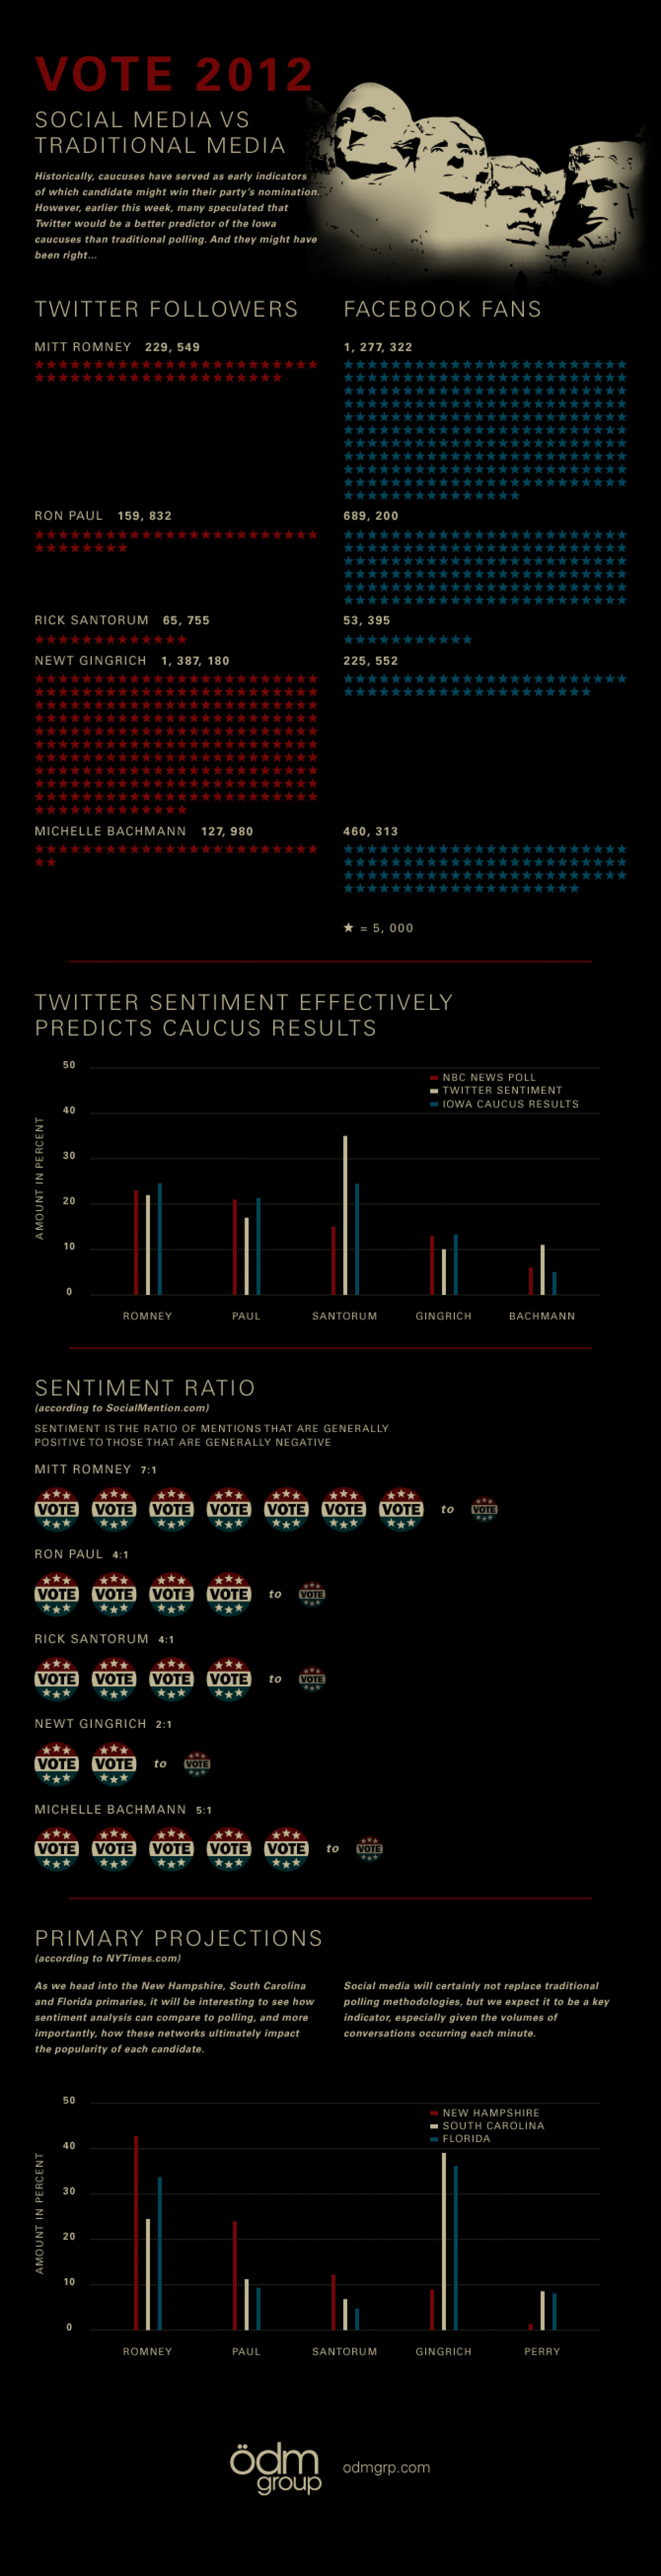 Vote 2012: Social Media vs. Traditional Media Infographic